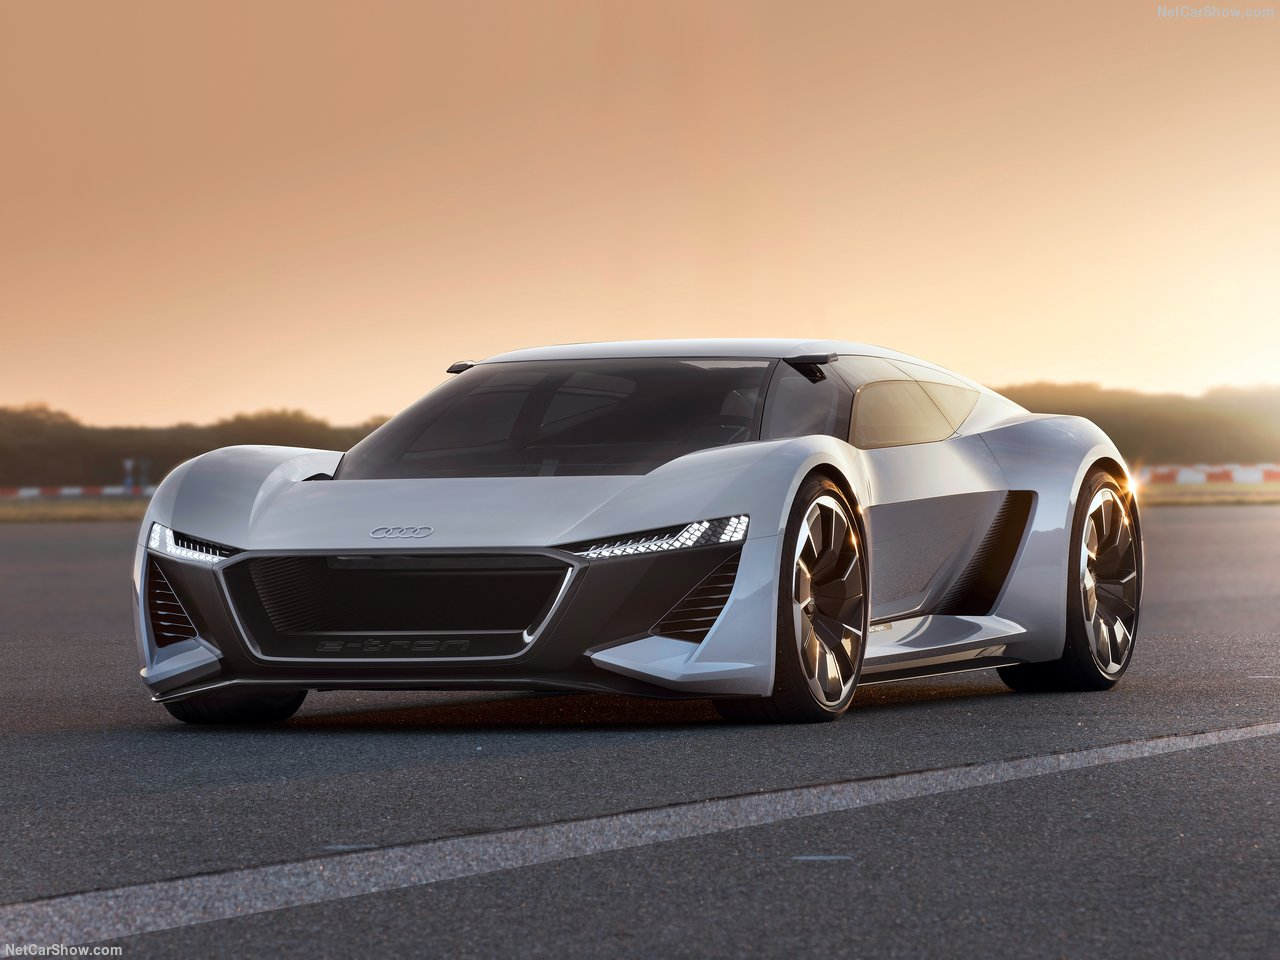 Audi PB18 e-tron concept vehicle